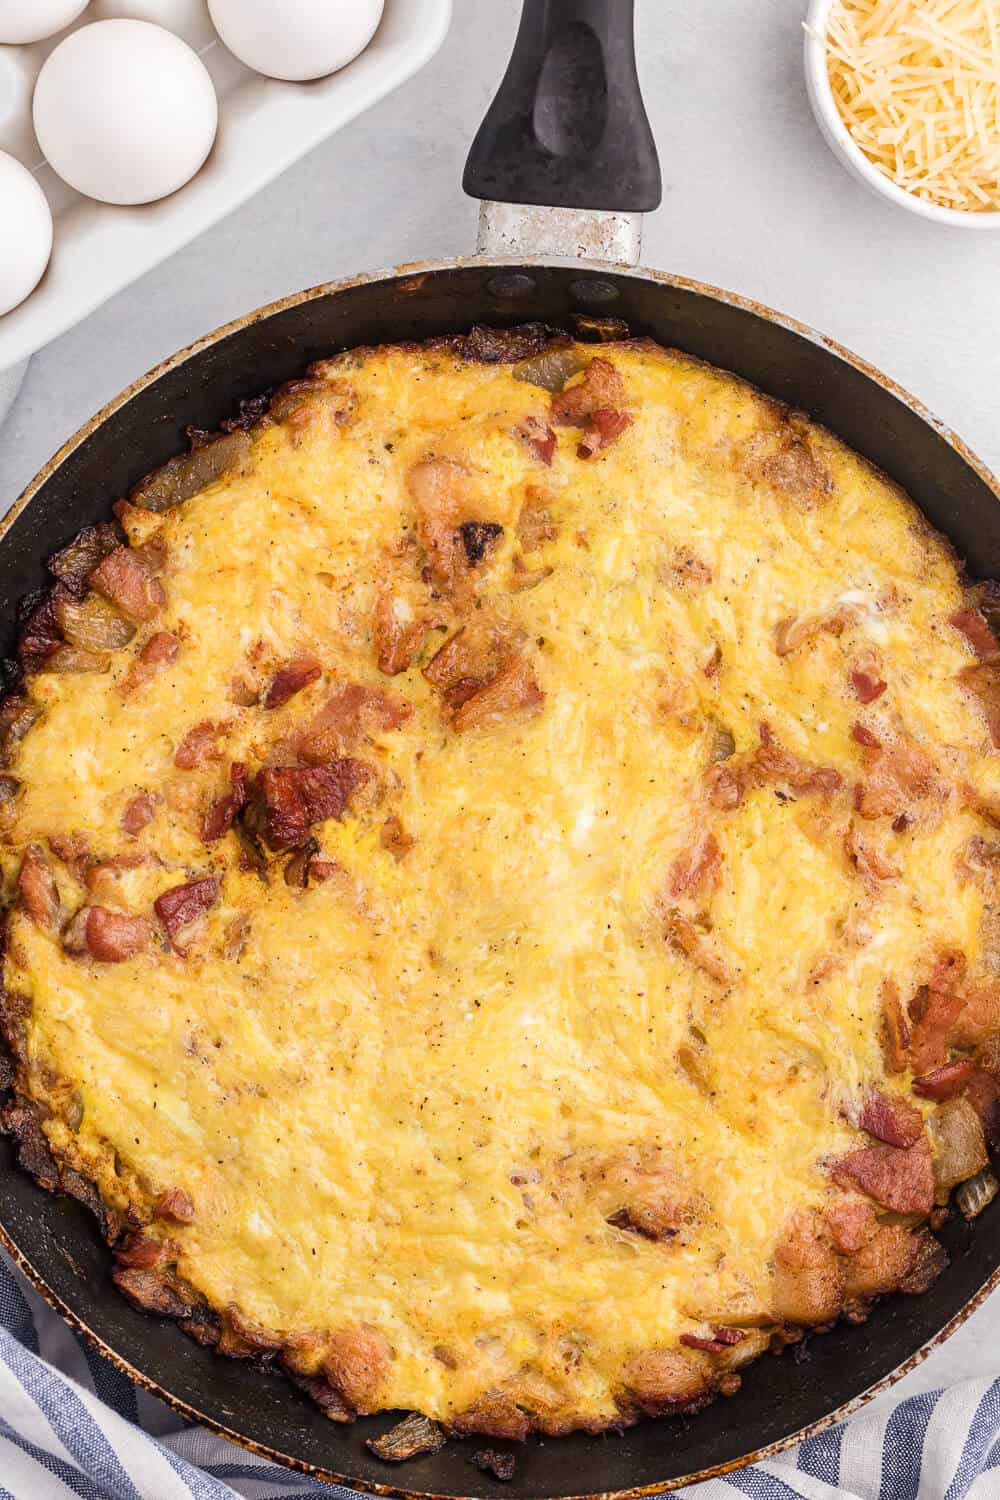 Pancetta & Onion Frittata - With sweet caramelized onions and salty pancetta, this quick and easy frittata is a great low-carb option - anytime of day!